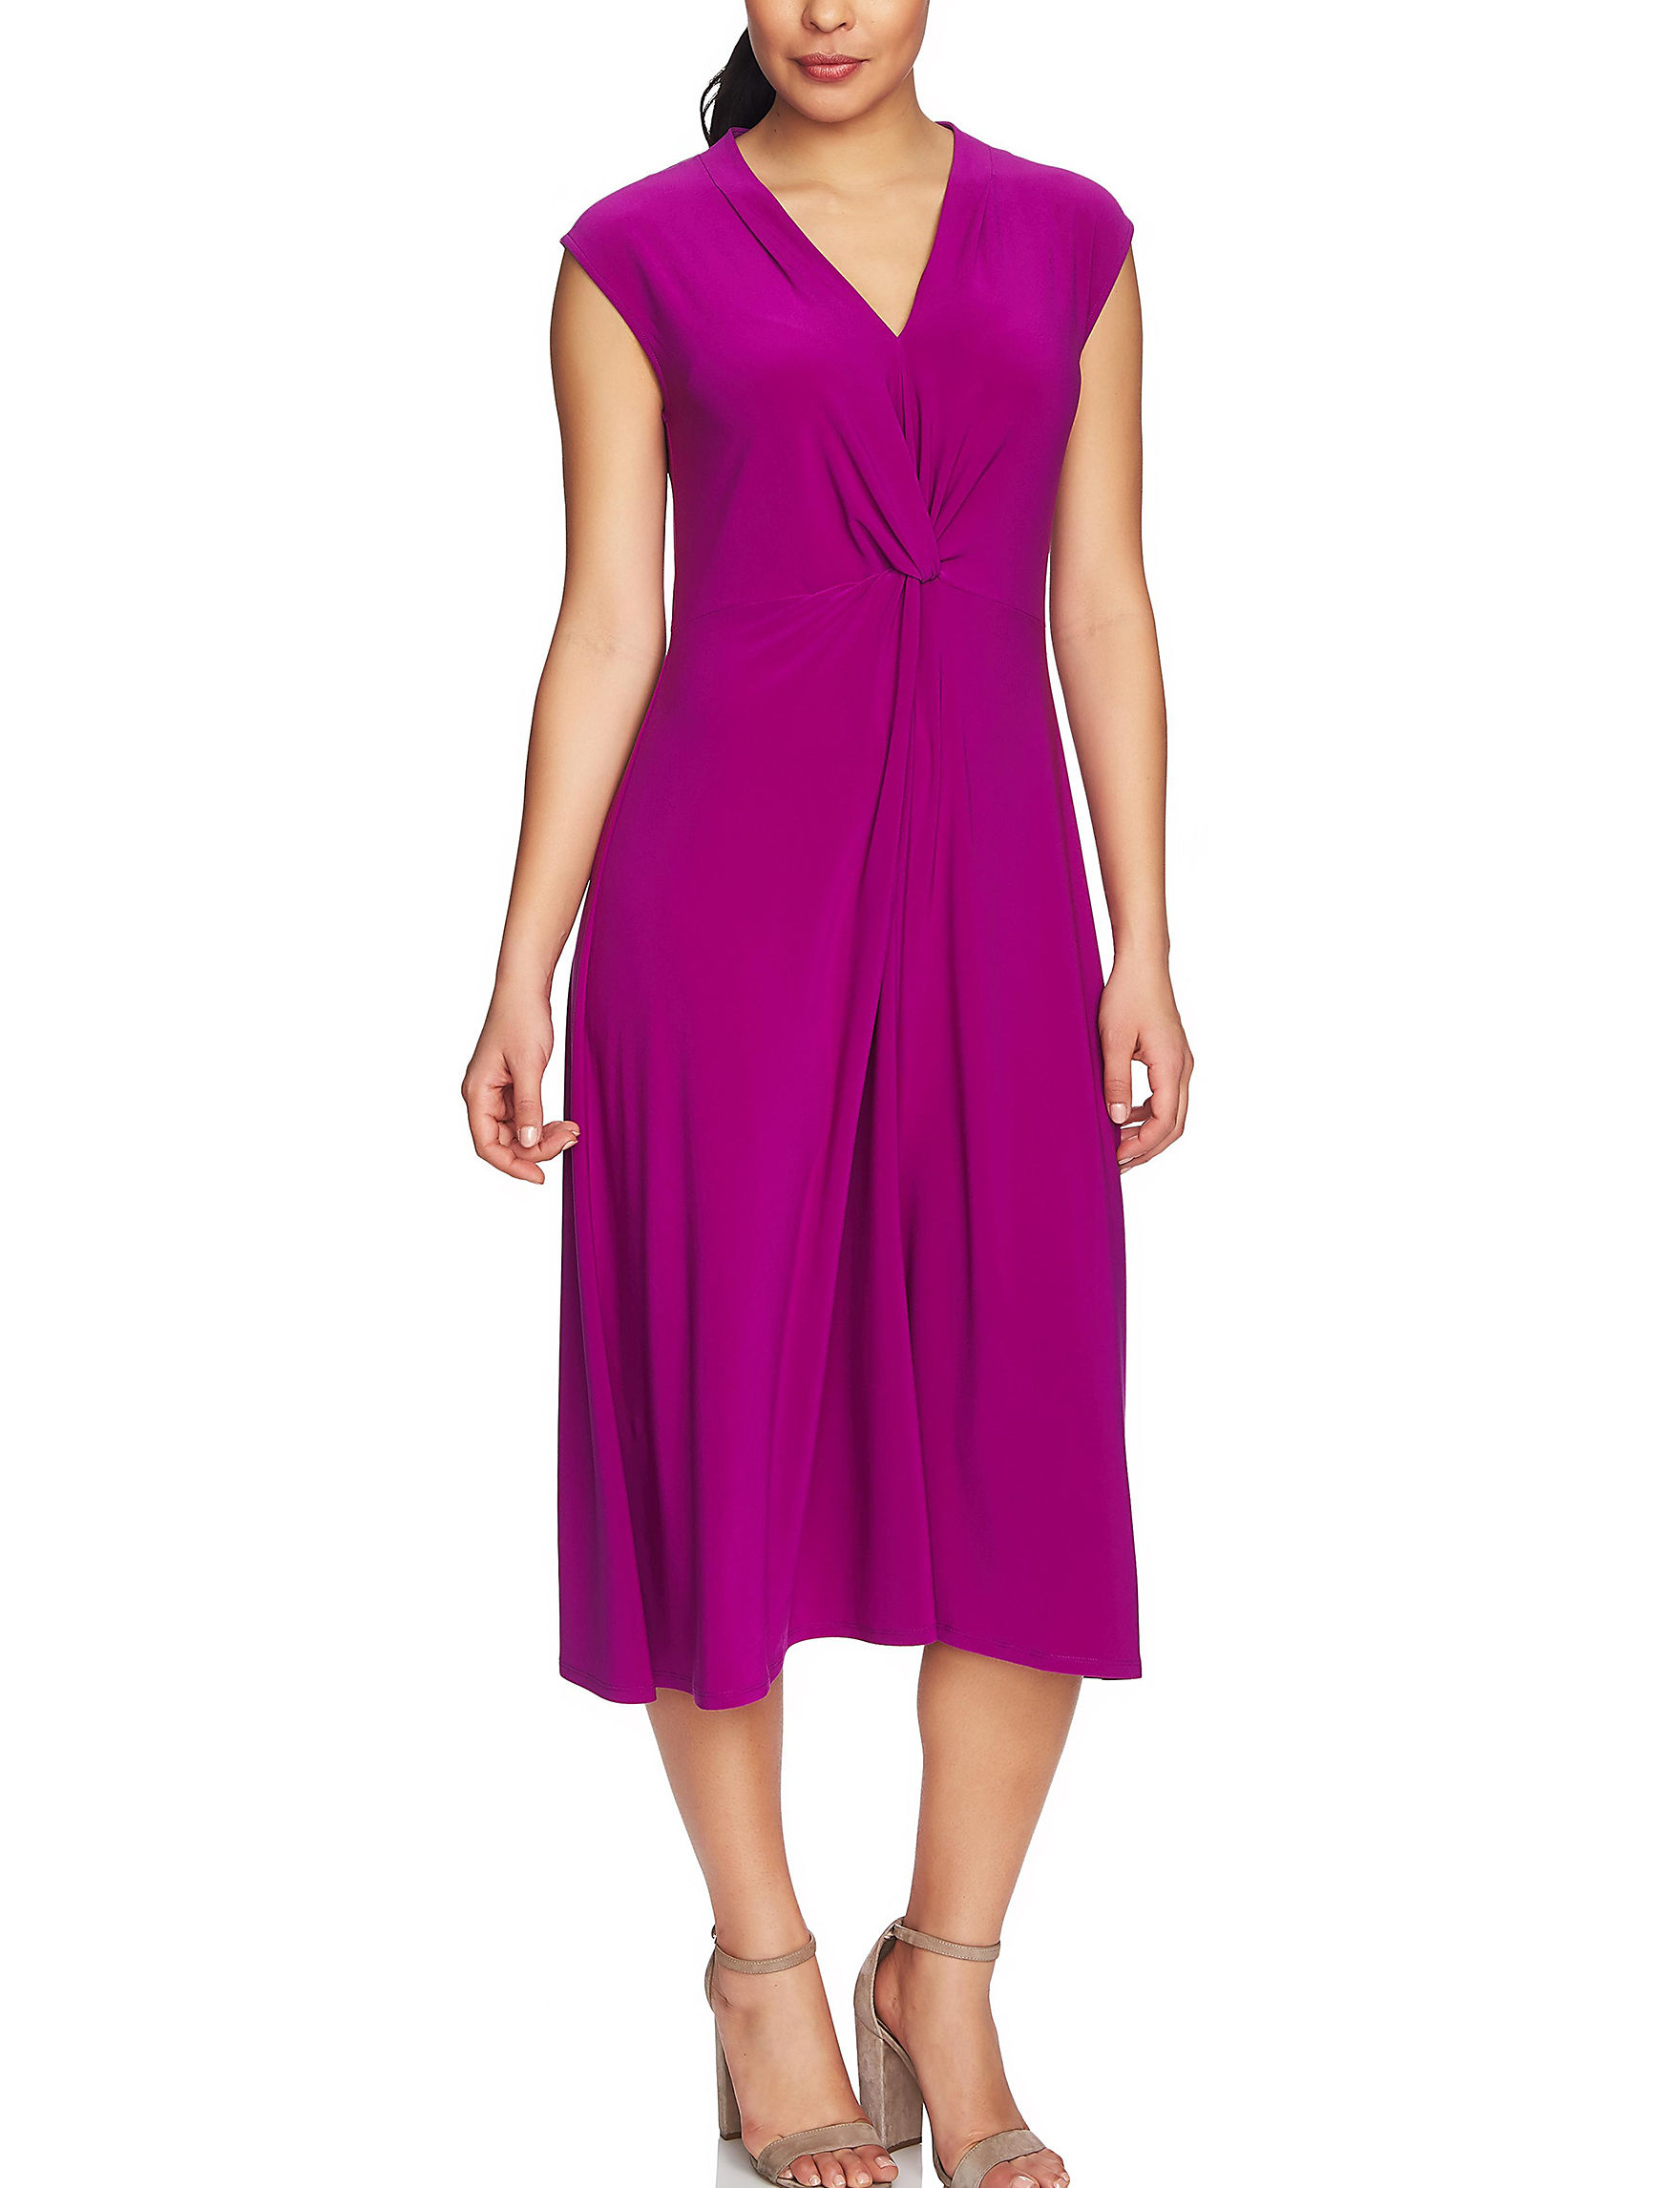 Chaus Fuchsia Everyday & Casual Fit & Flare Dresses Shift Dresses